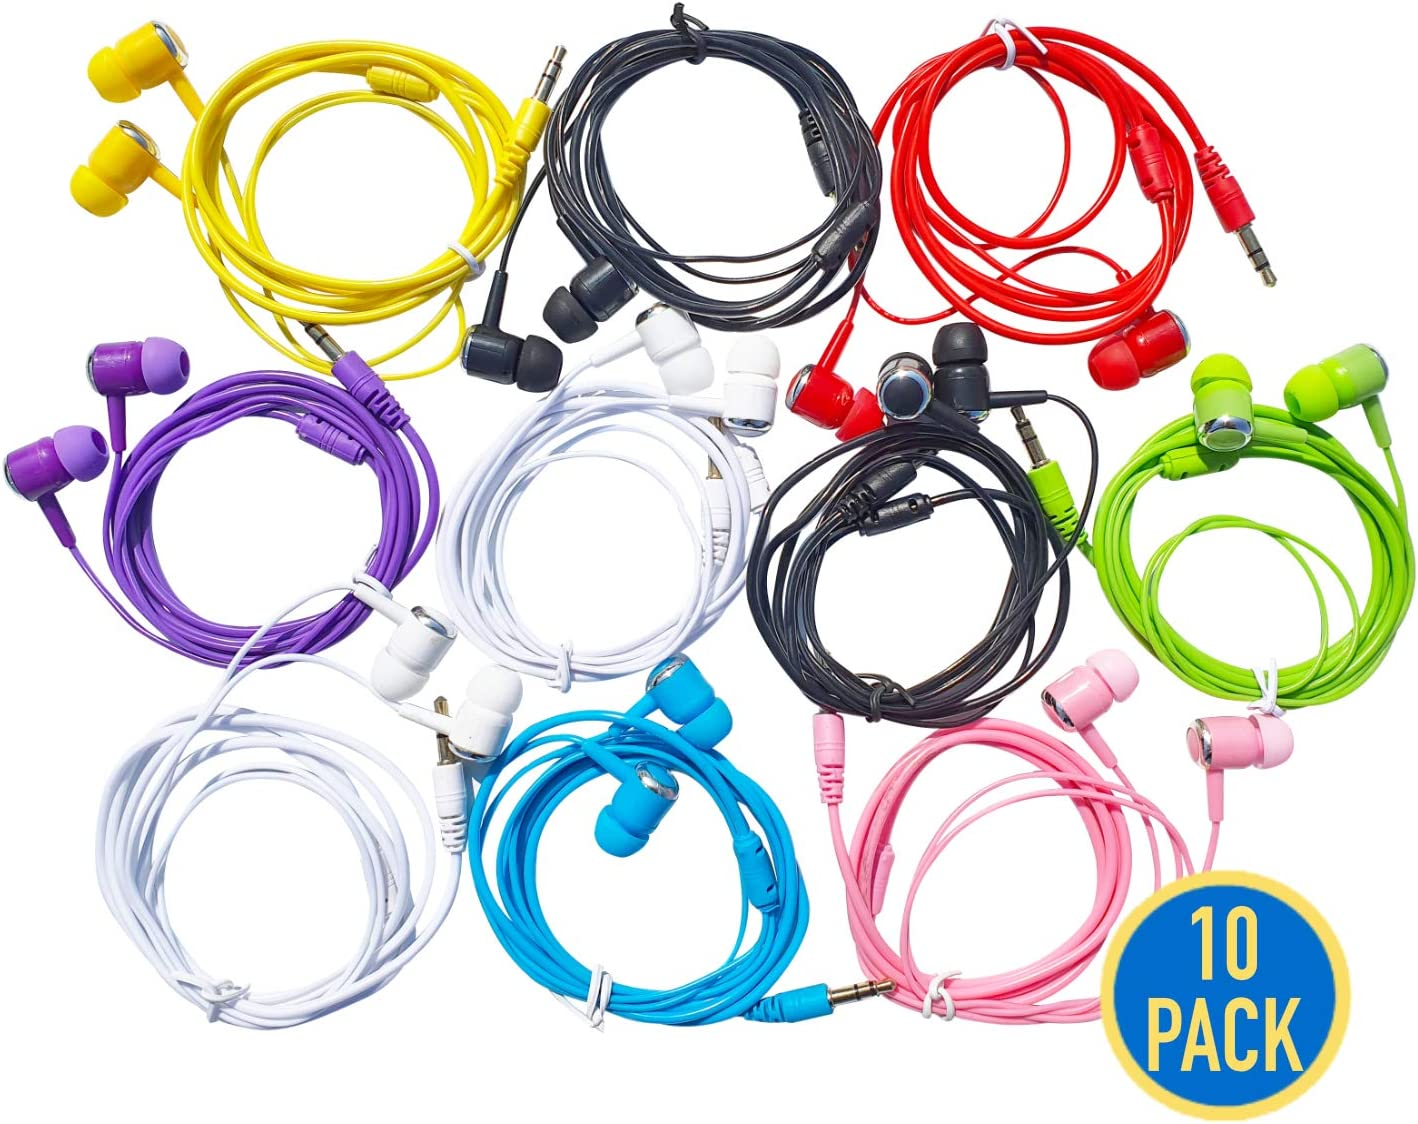 G01 Earbud Headphones Bulk Pack of 10, Basic Corded Earphones Wholesale Accessory for iPhone Smartphone Computer Laptop Chromebook MP3 Player (8 Colors, Pack of 10)